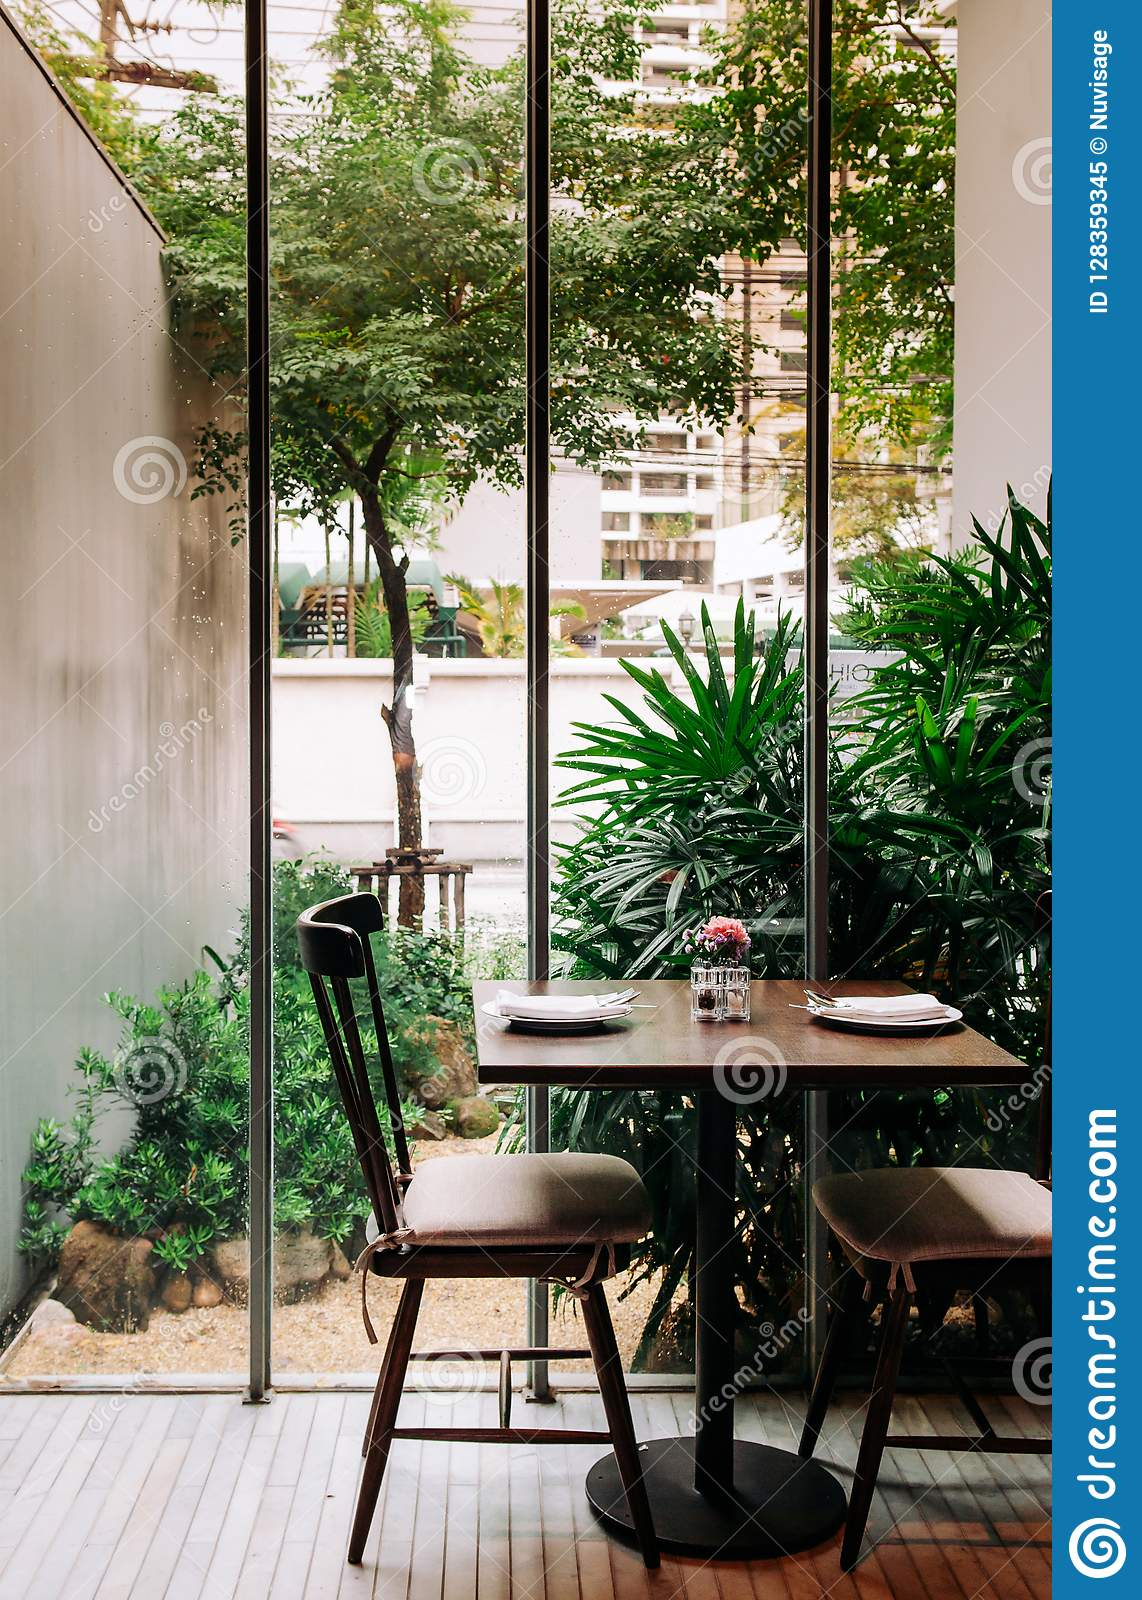 Superb OCT 17, 2013 Bangkok, Thailand   Contemporary Designed Wooden Dinner Table  In Modern Restaurant With Tropical Garden View Through Glass Wall